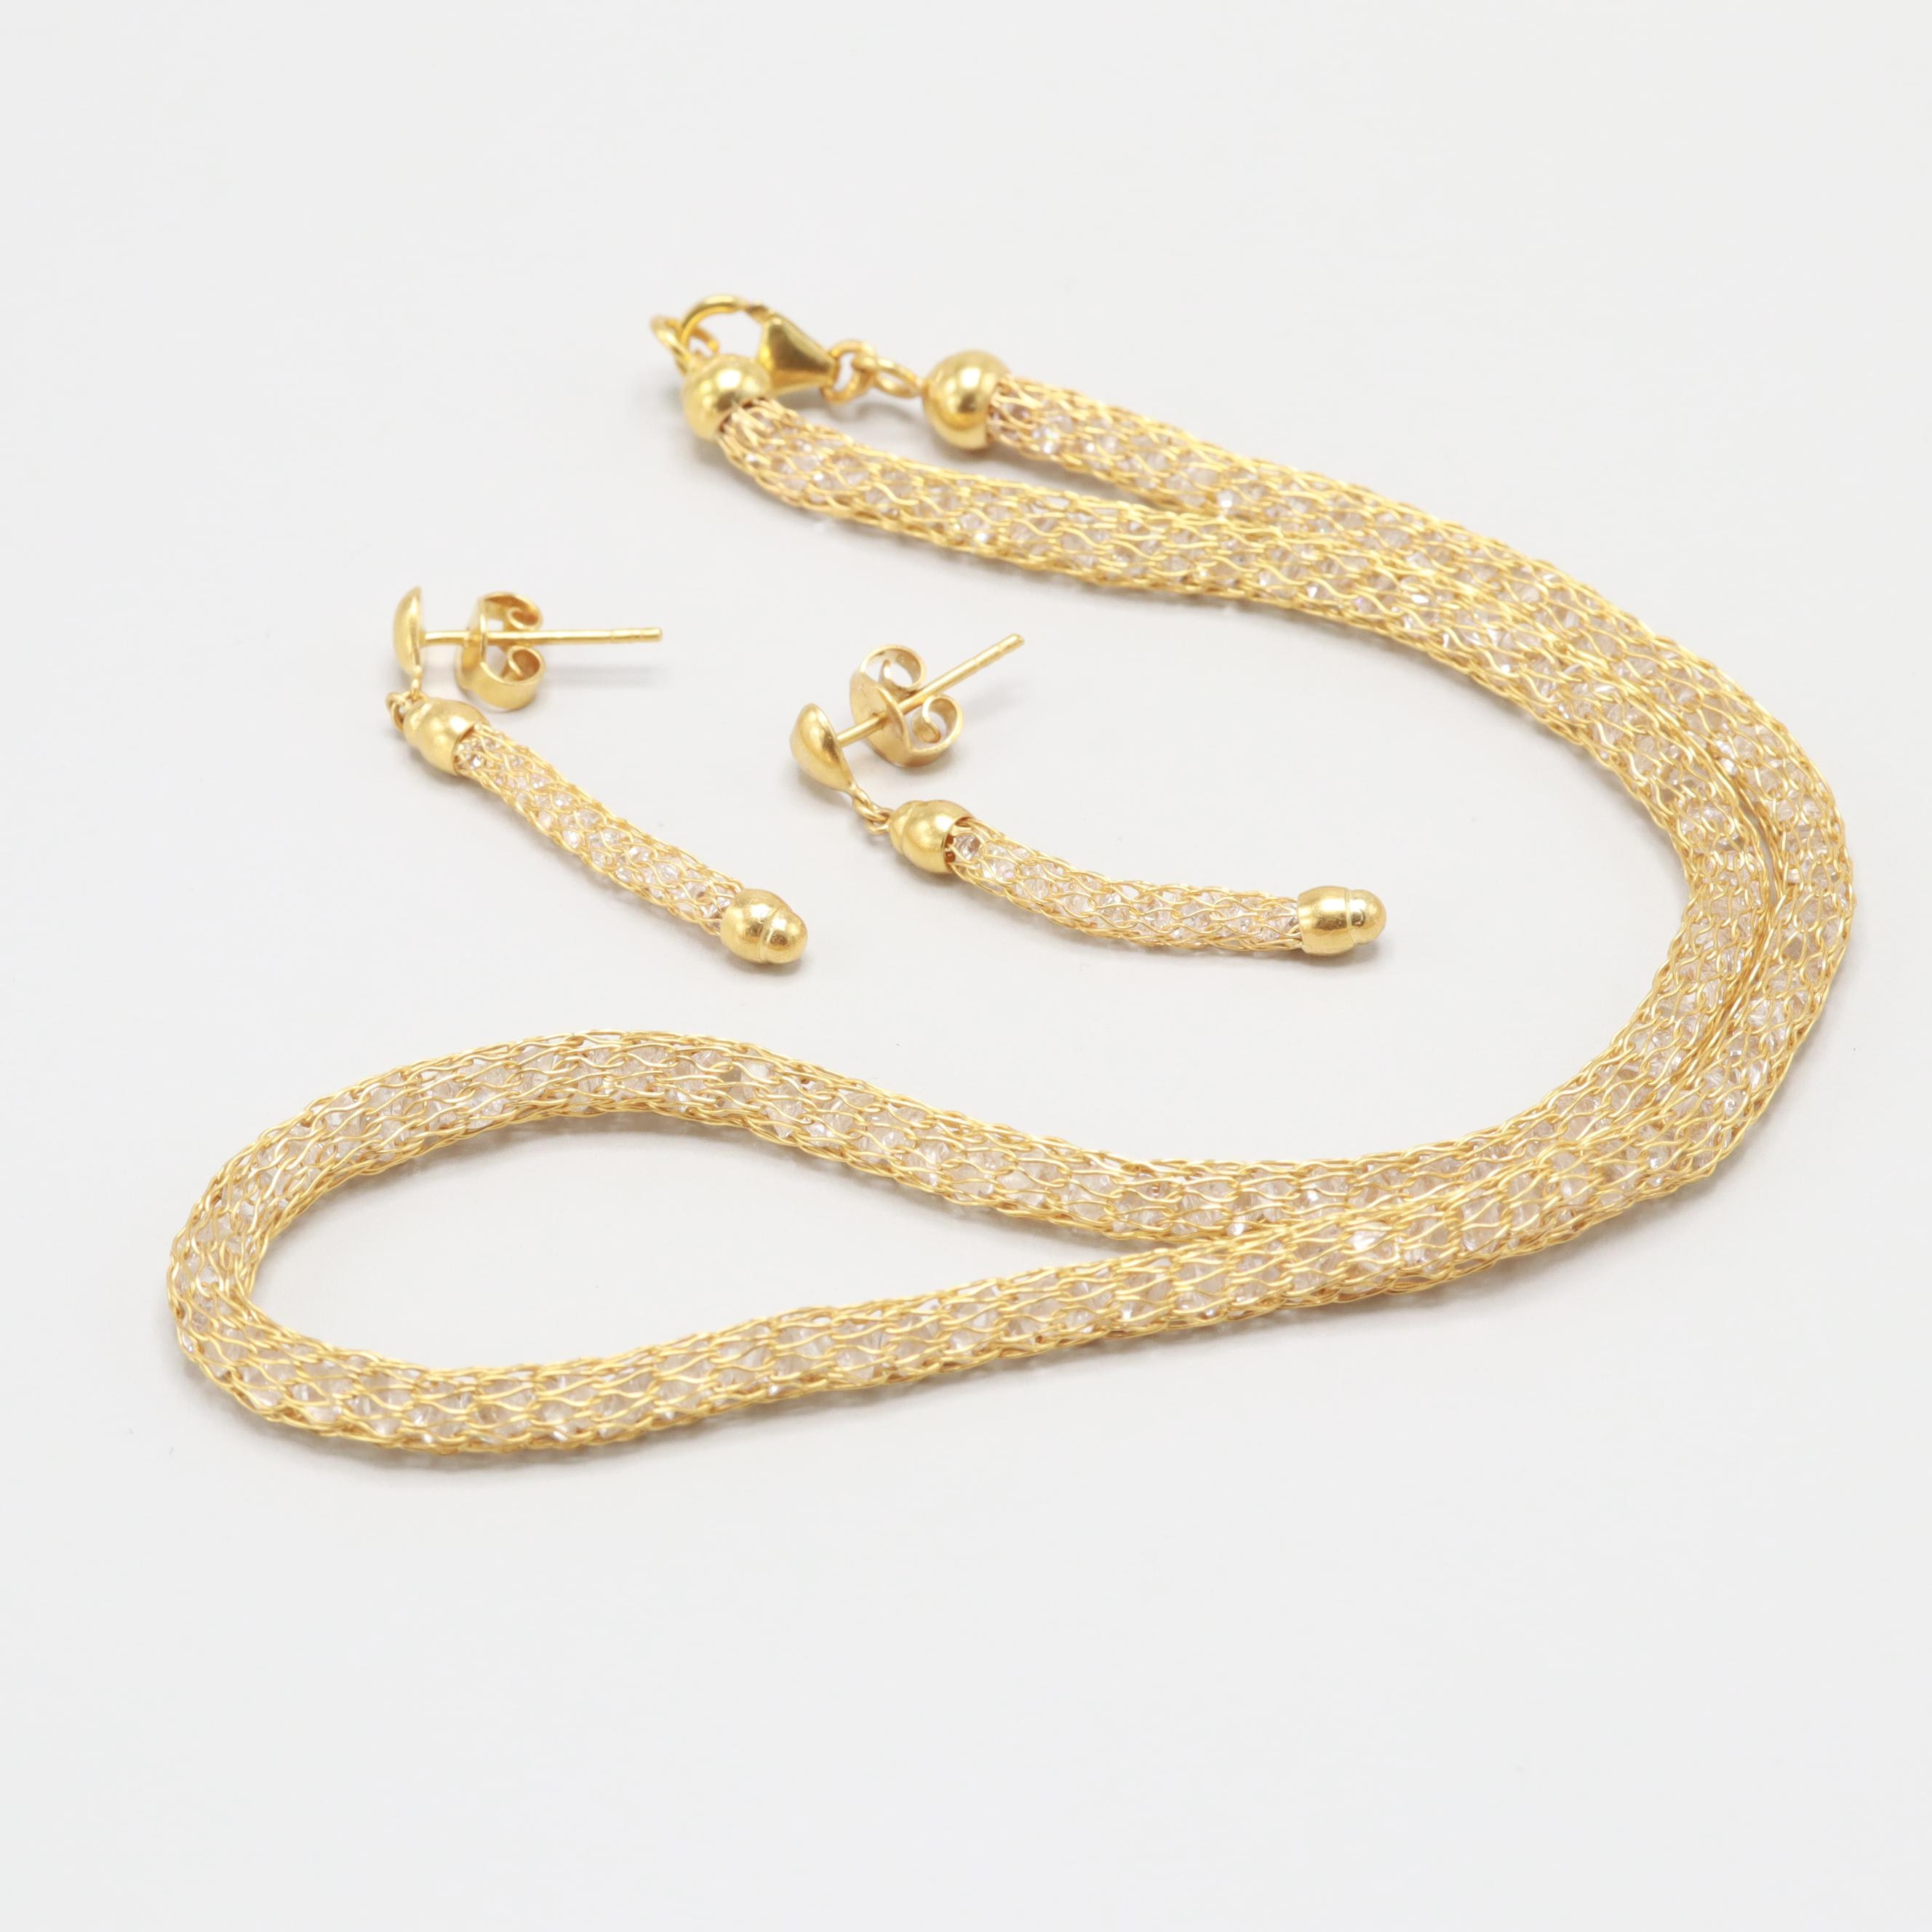 18K Yellow Gold Cubic Zirconia Necklace and Earrings